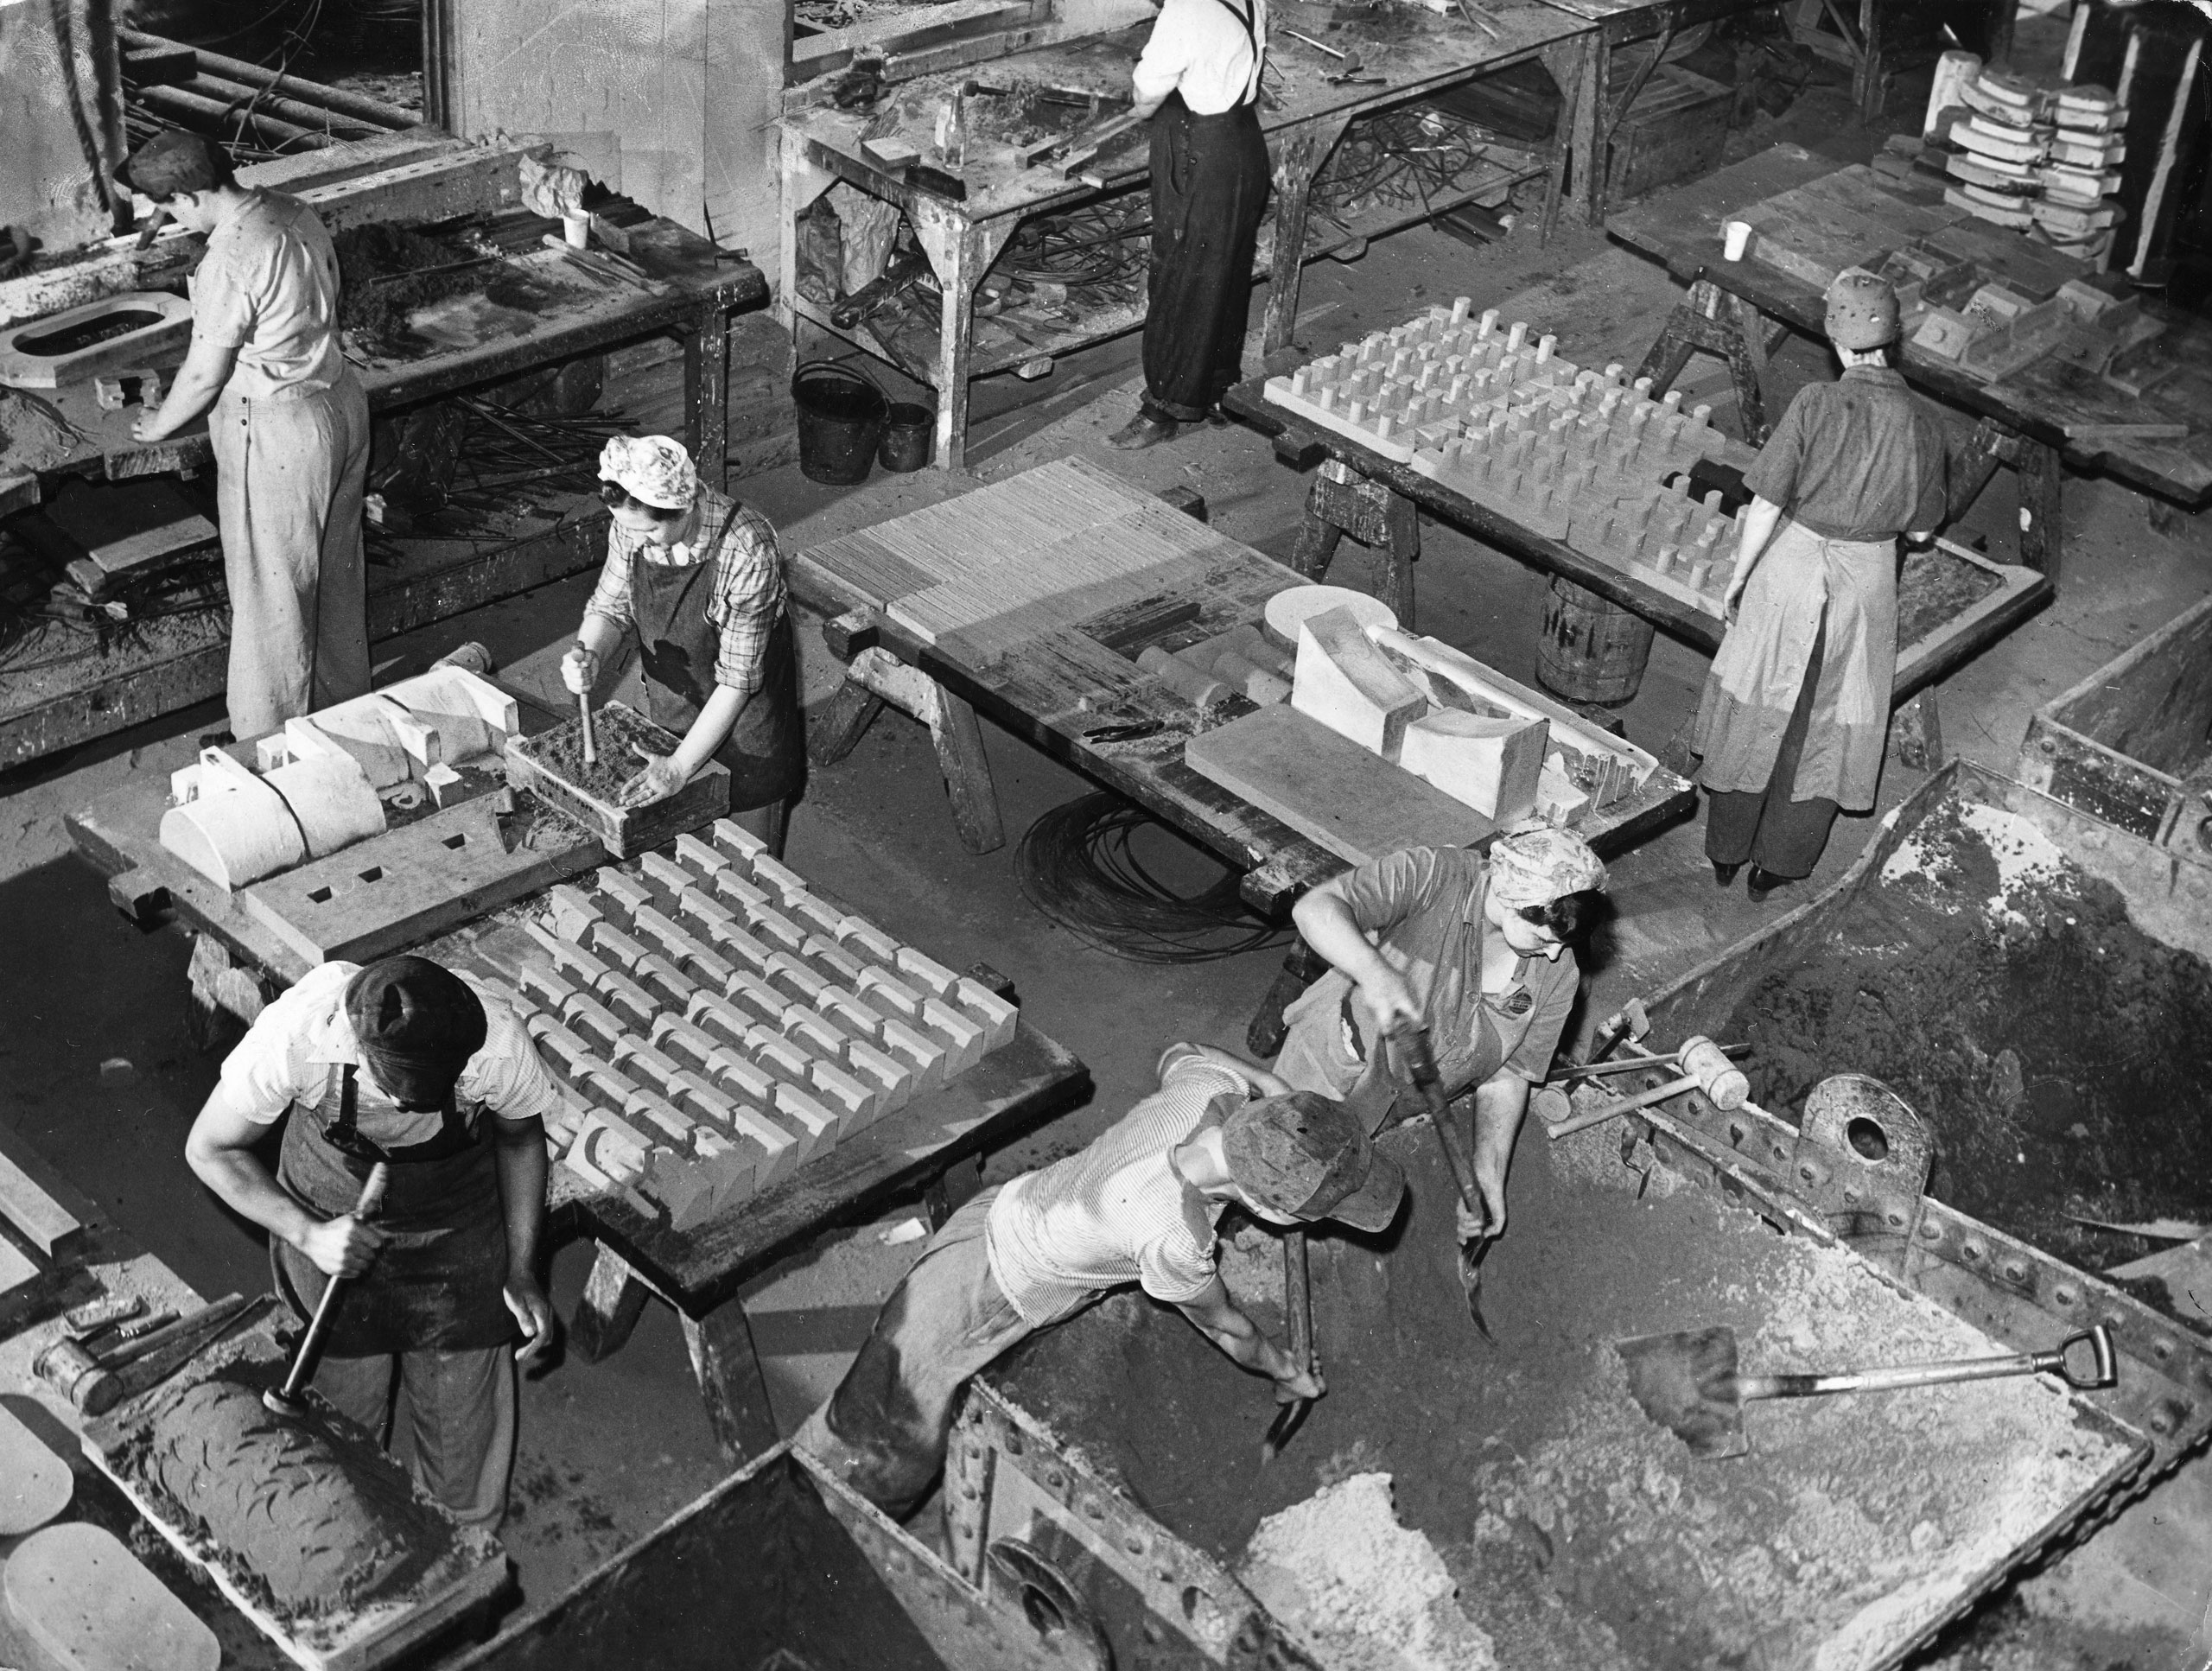 <b>Caption from LIFE.</b> In the foundry of the Carnegie-Illinois Steel Co., these women are at work as core-makers. A total of 18 women employed here on two shifts. The core-maker's functions are like those of a sculptor, and the implements used are trowels, spatulas and mallets. Castings being made in this picture are for use not only at Carnegie-Illinois but at other plants.